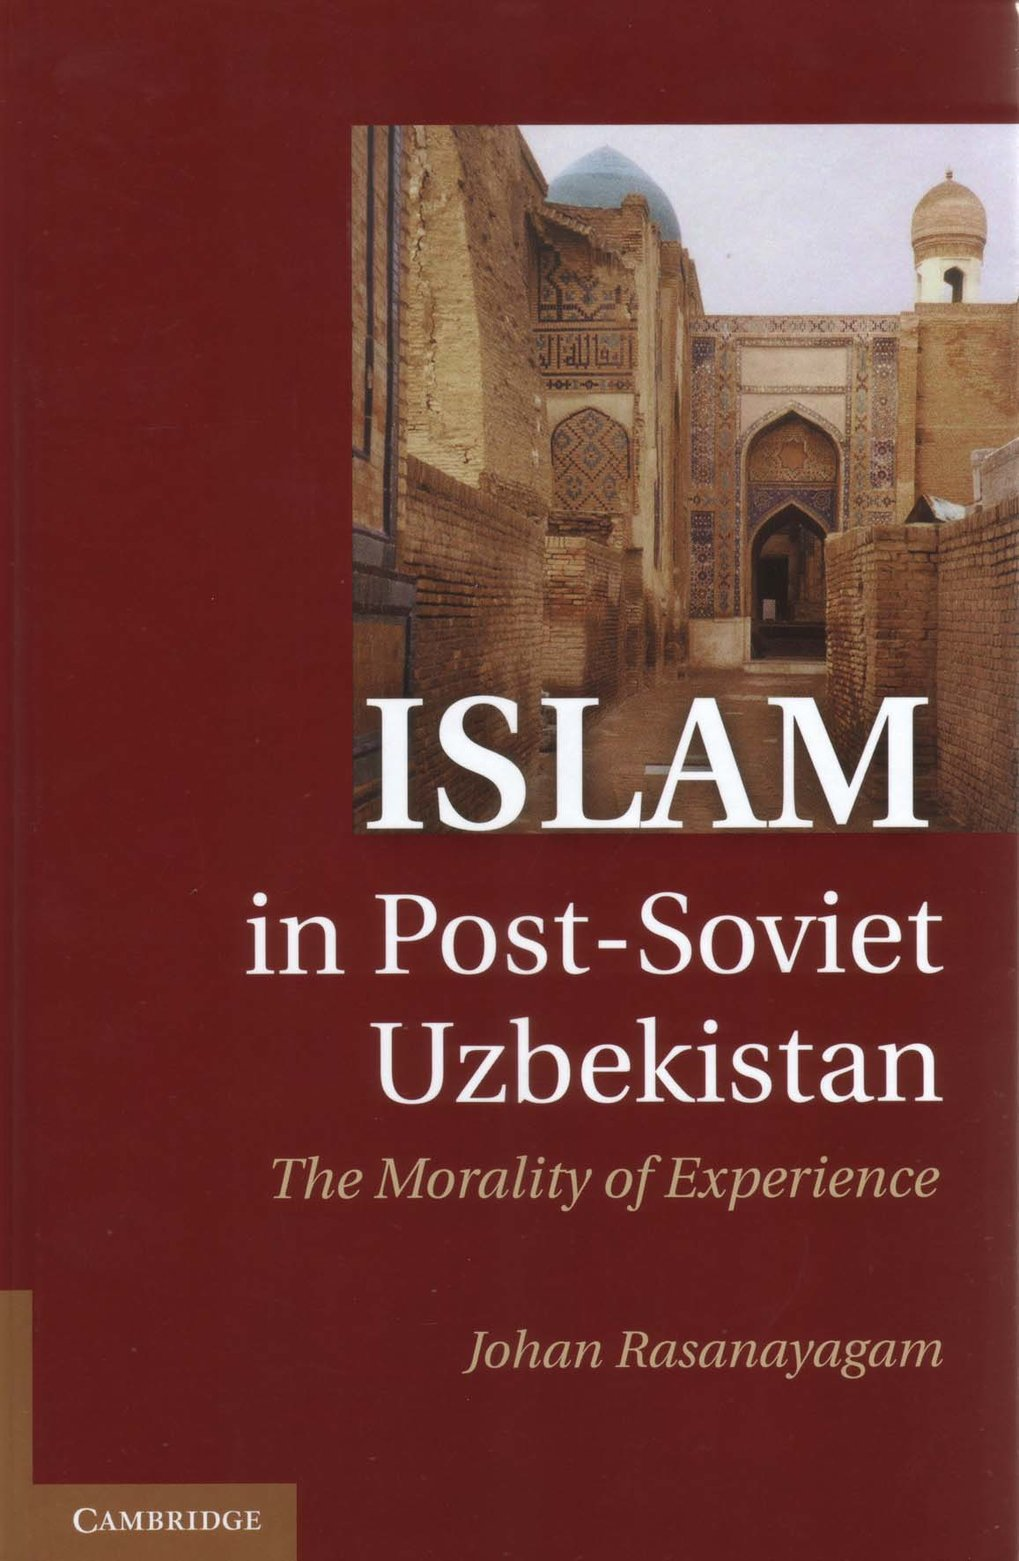 Islam in Post-Soviet Uzbekistan. The Morality of Experience